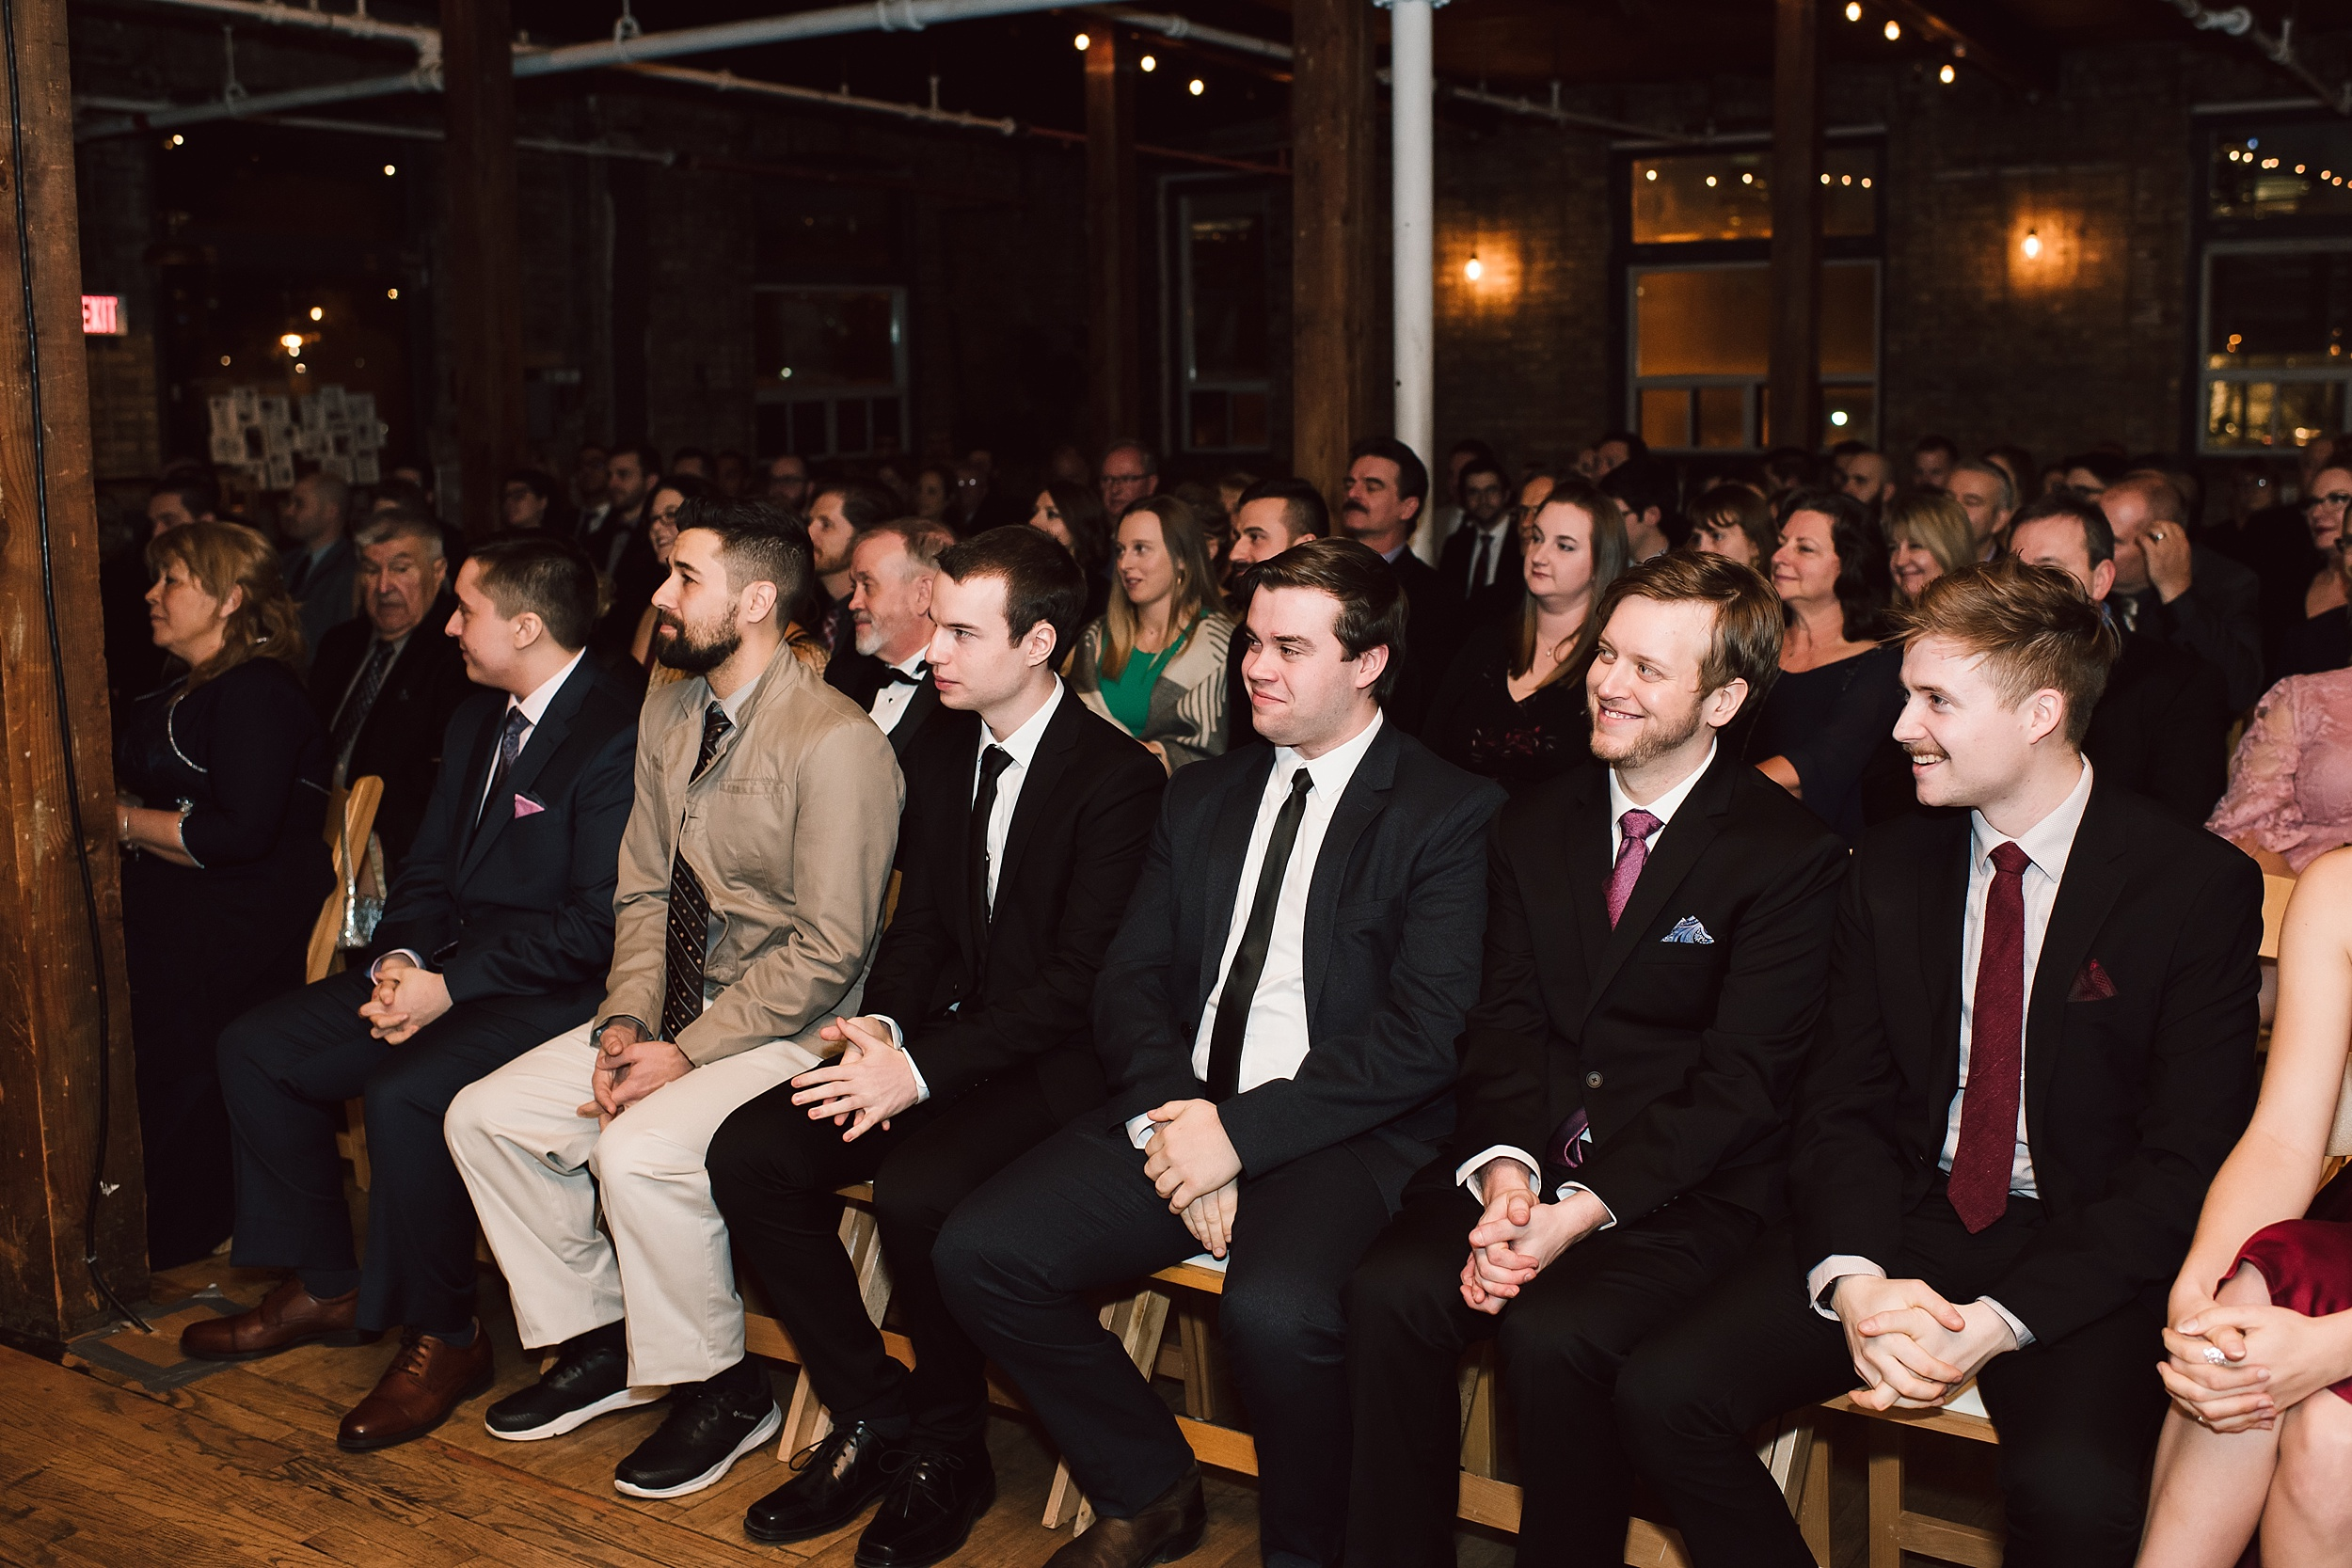 Jam_Factory_Wedding_Toronto_Winter_Wedding_Photographer_0054.jpg